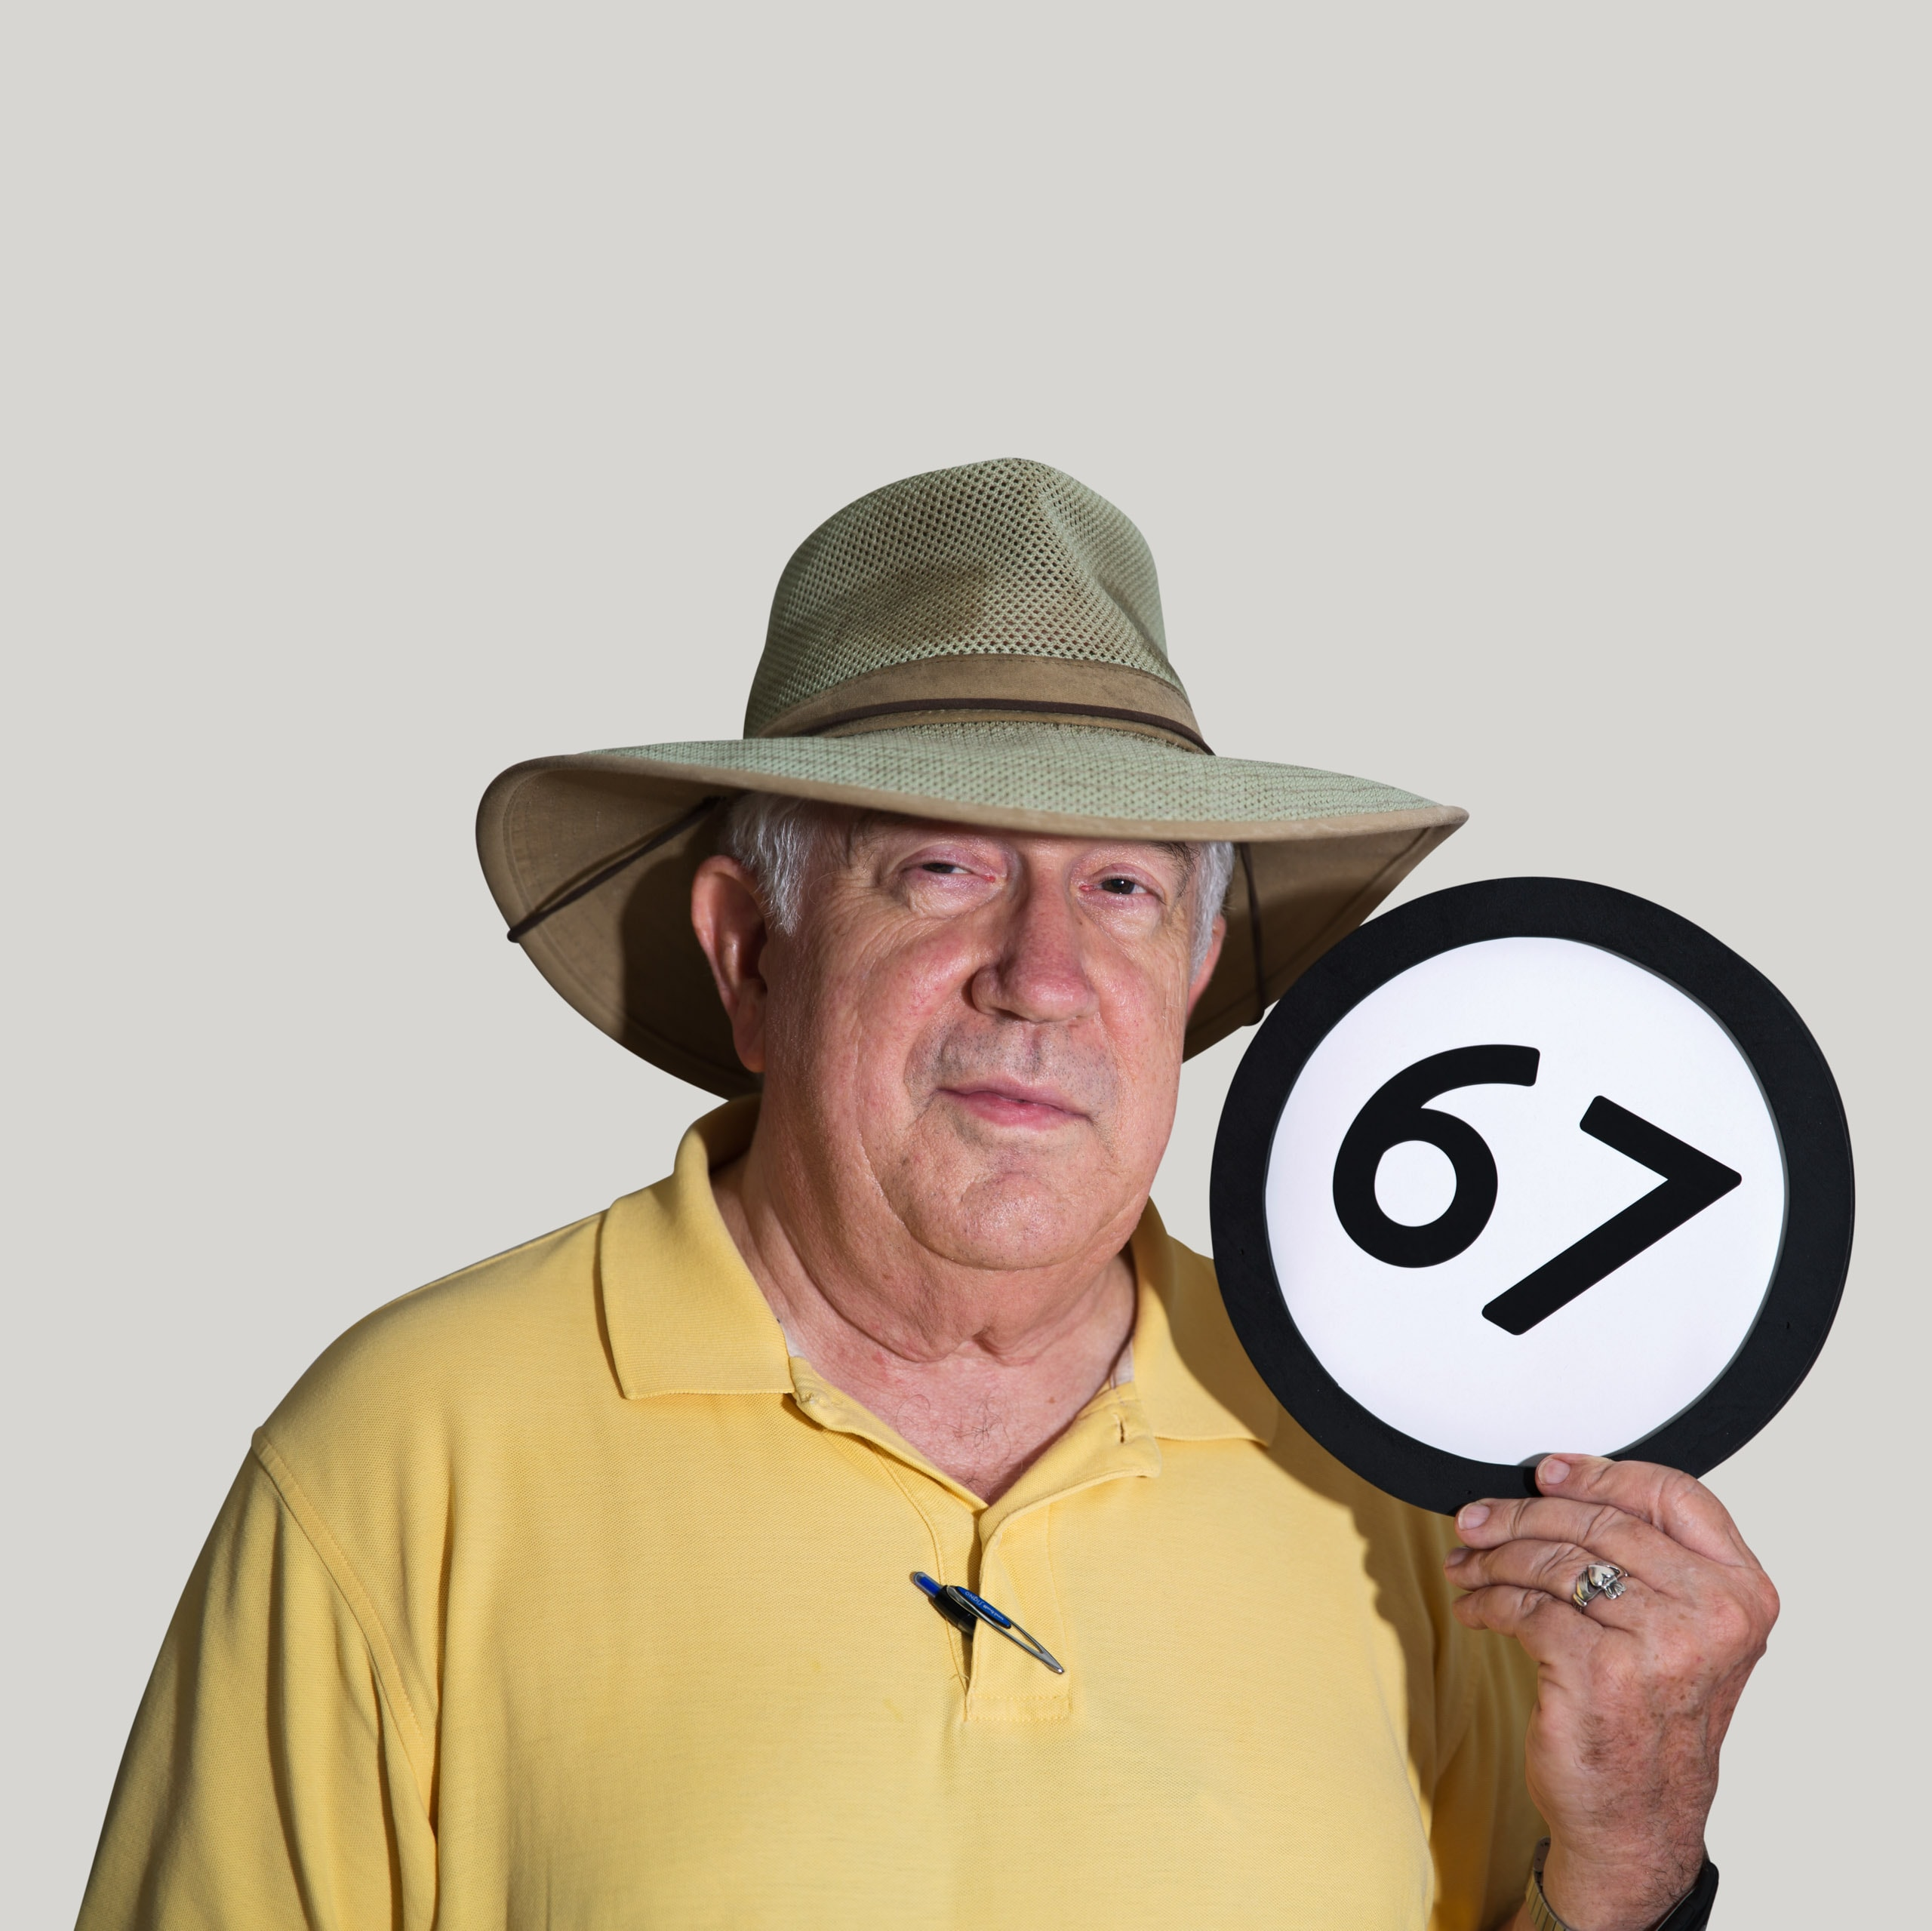 67 year old man wears a worn-in sunhat and faded yellow polo shirt. He looks into the lens with a relaxed expression. A silver Claddagh ring is on the hand that holds up a token with the number 67 on it. This digital image is part of the 1 to Infinity portrait photography series by Danny Goldfield.